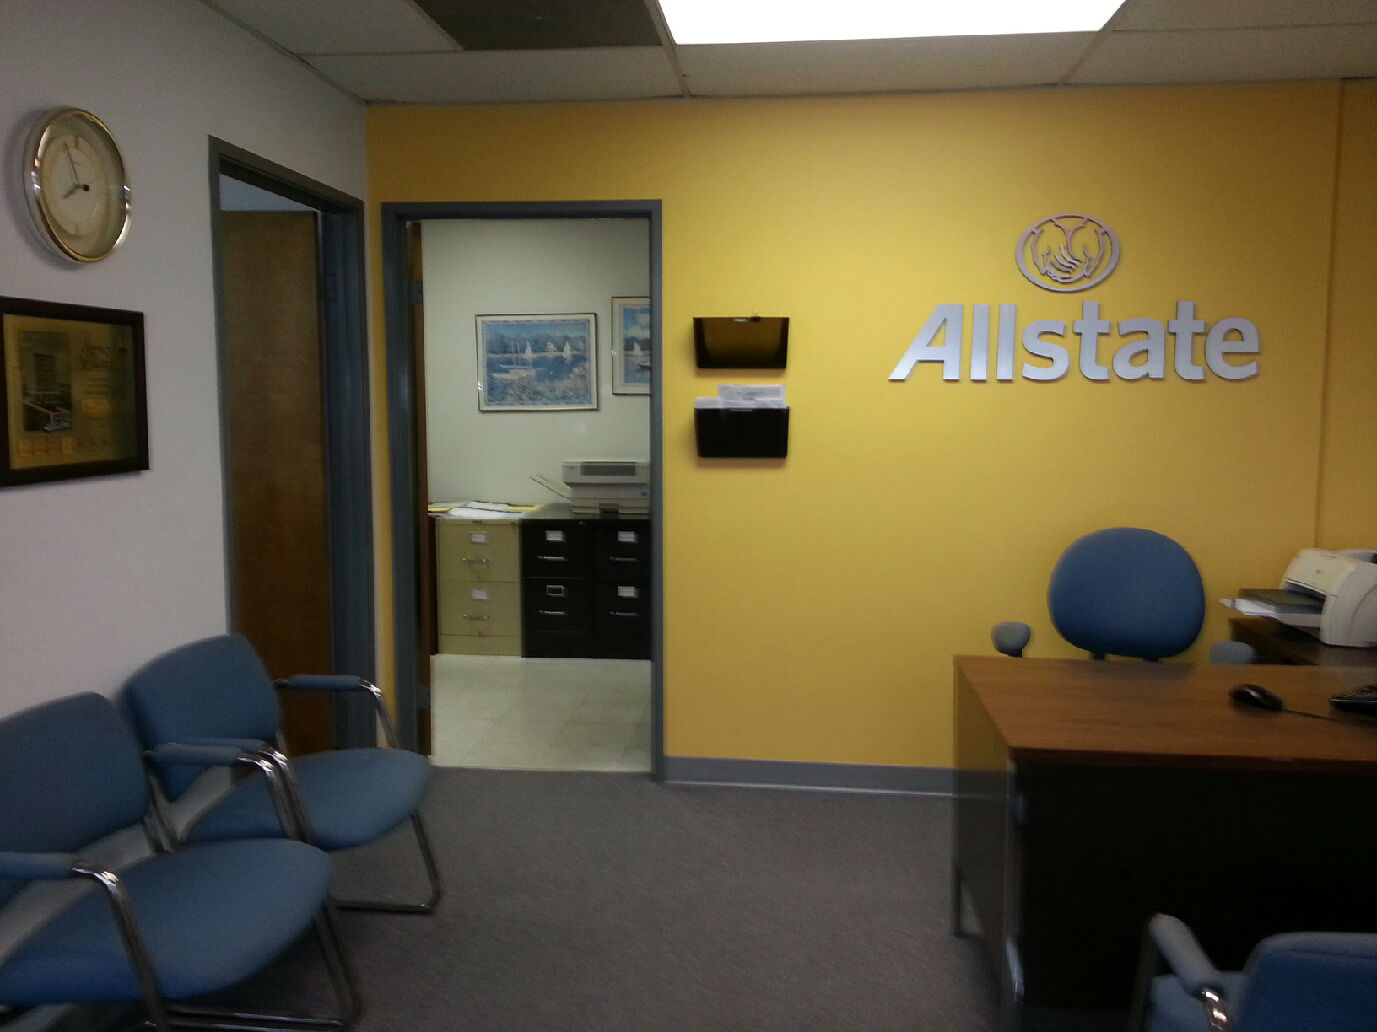 Brook Daly: Allstate Insurance image 2